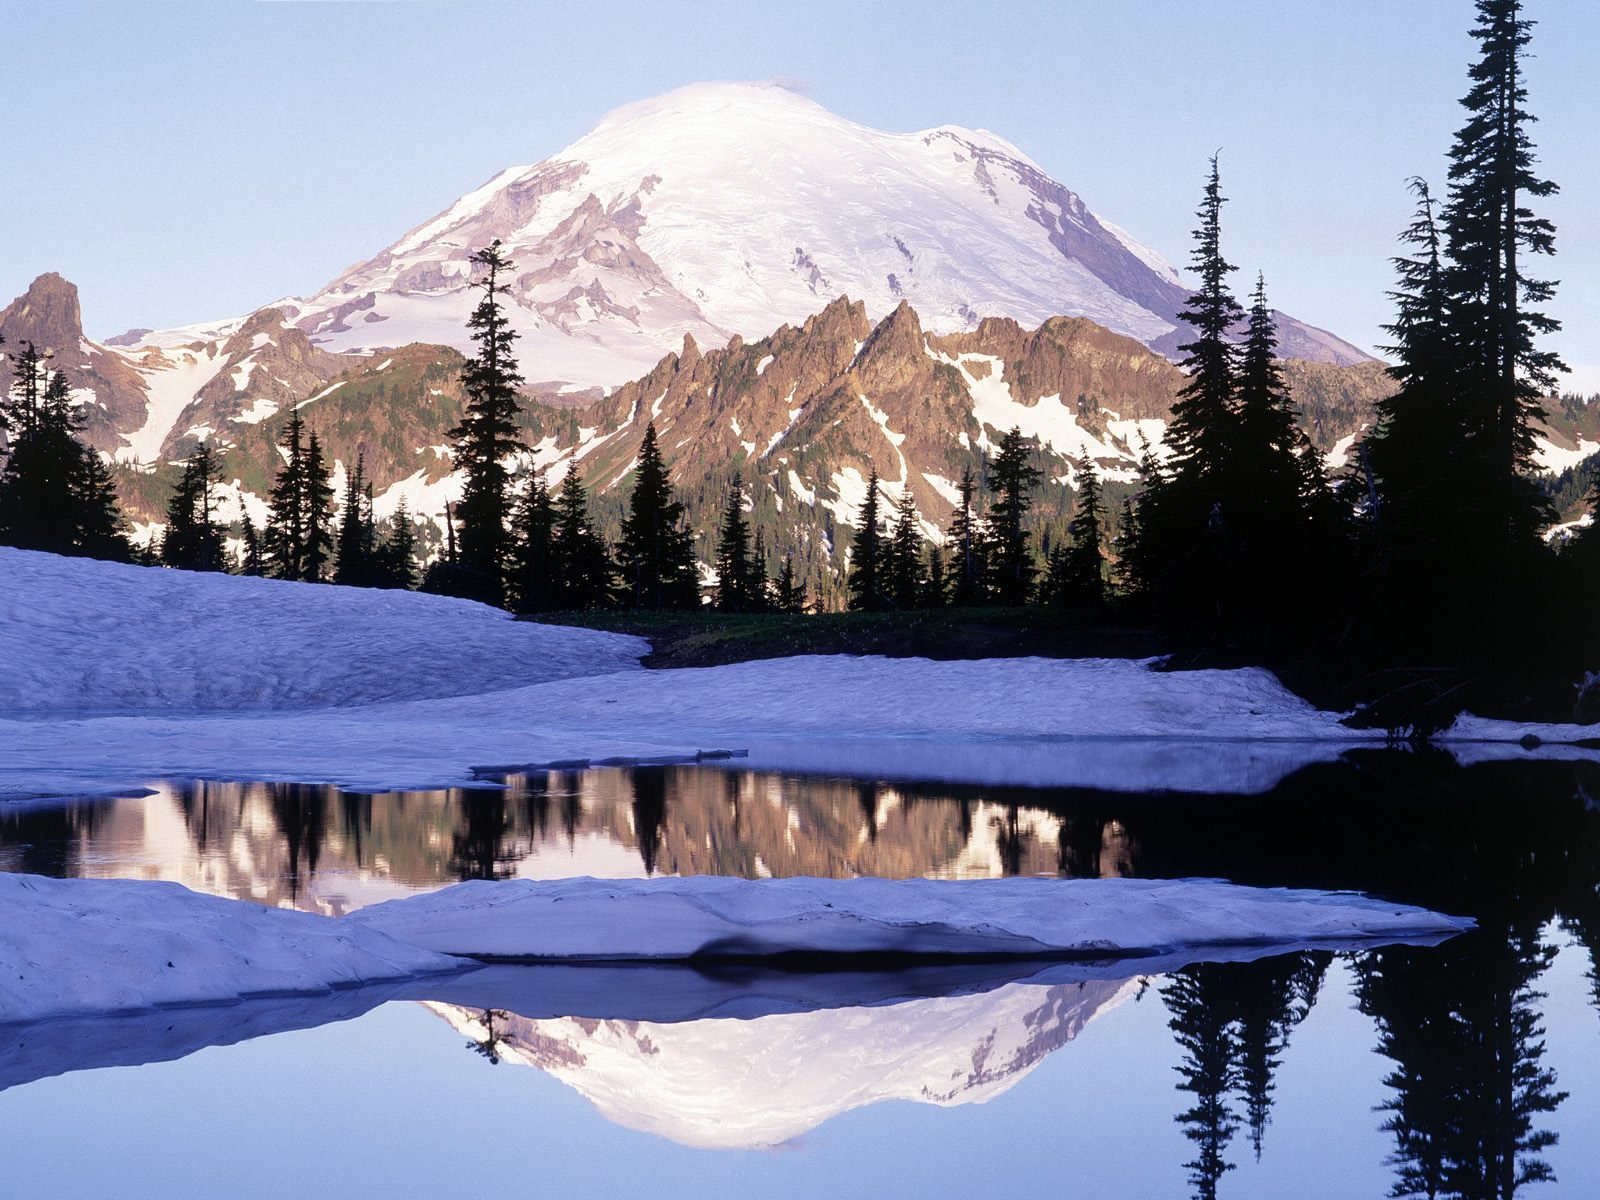 Cool Reflections in Tipsoo Lake